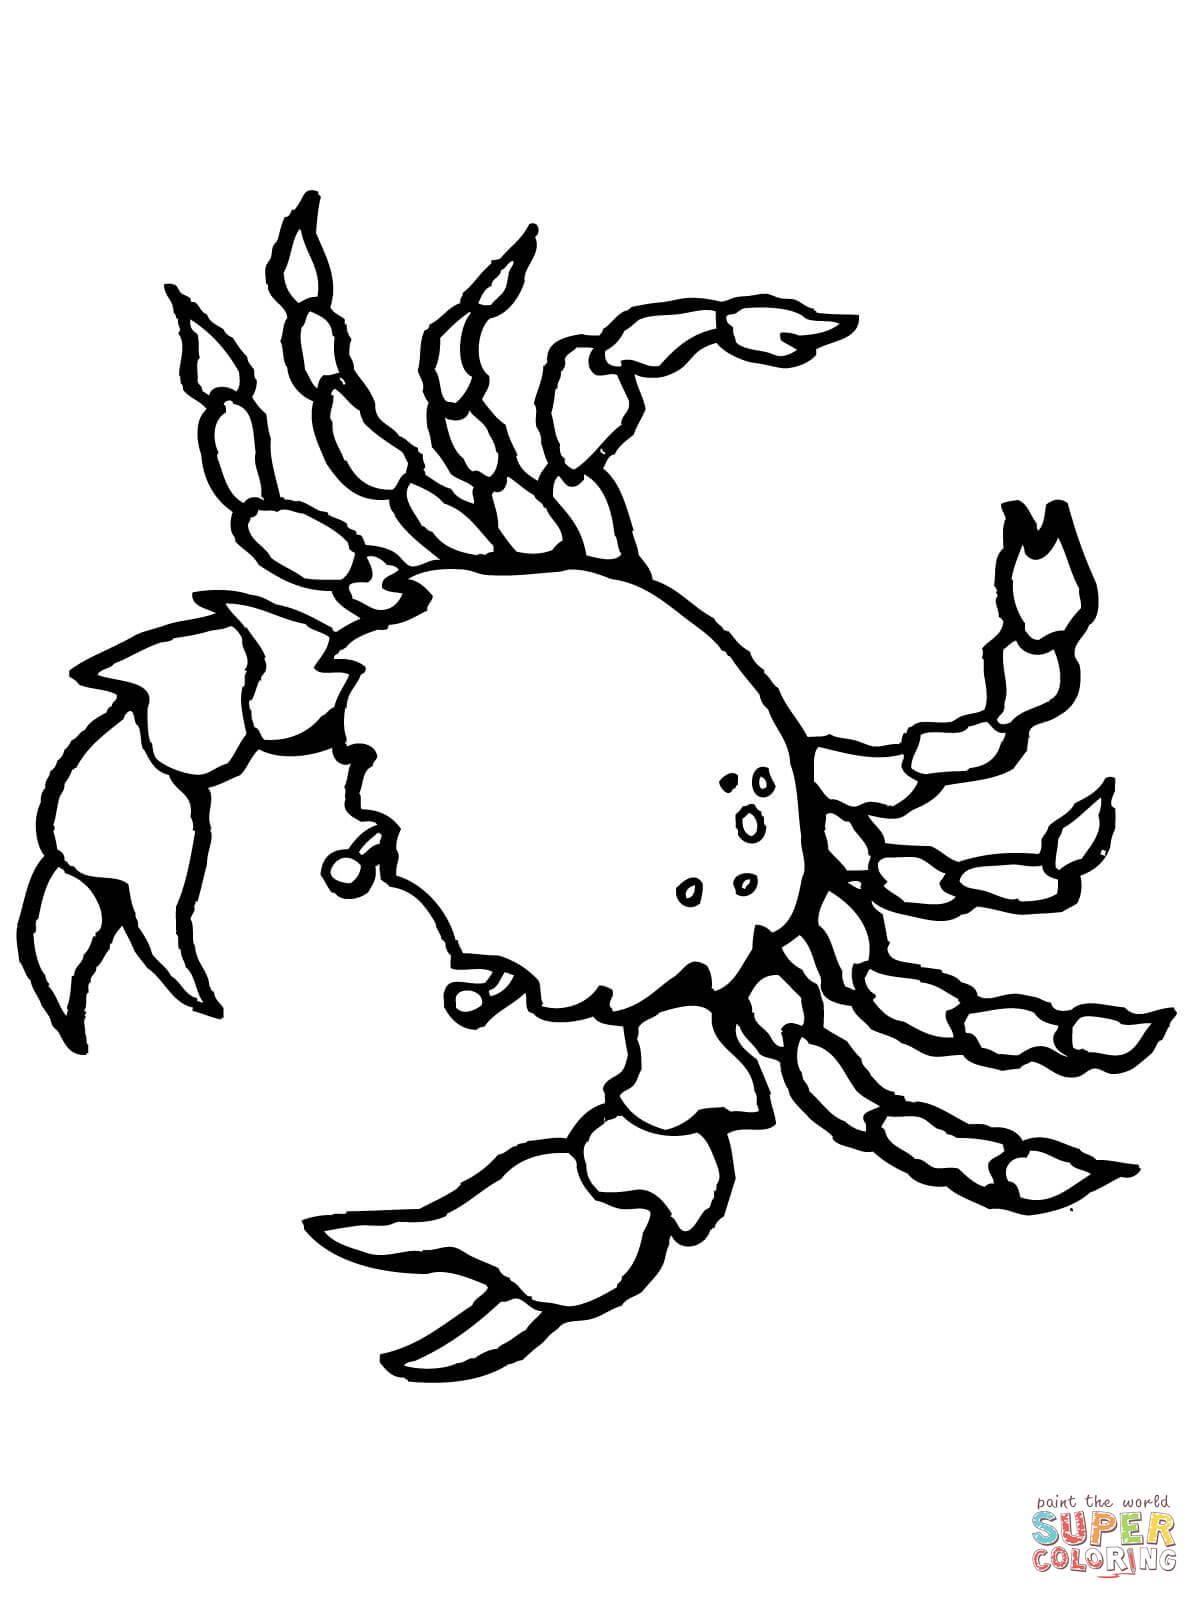 Crustacean coloring #4, Download drawings